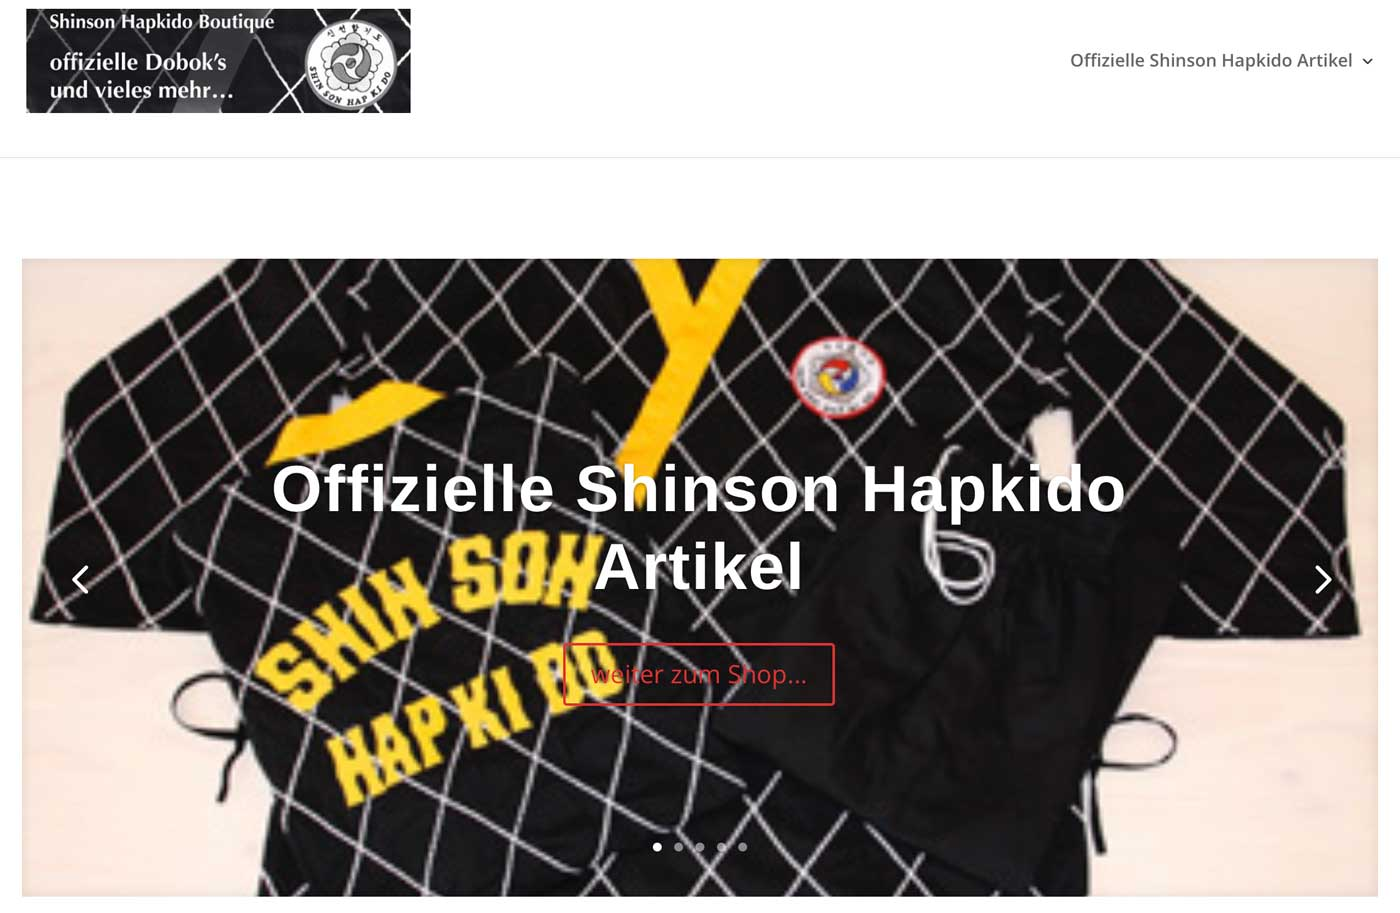 SHINSON HAPKIDO BOUTIQUE